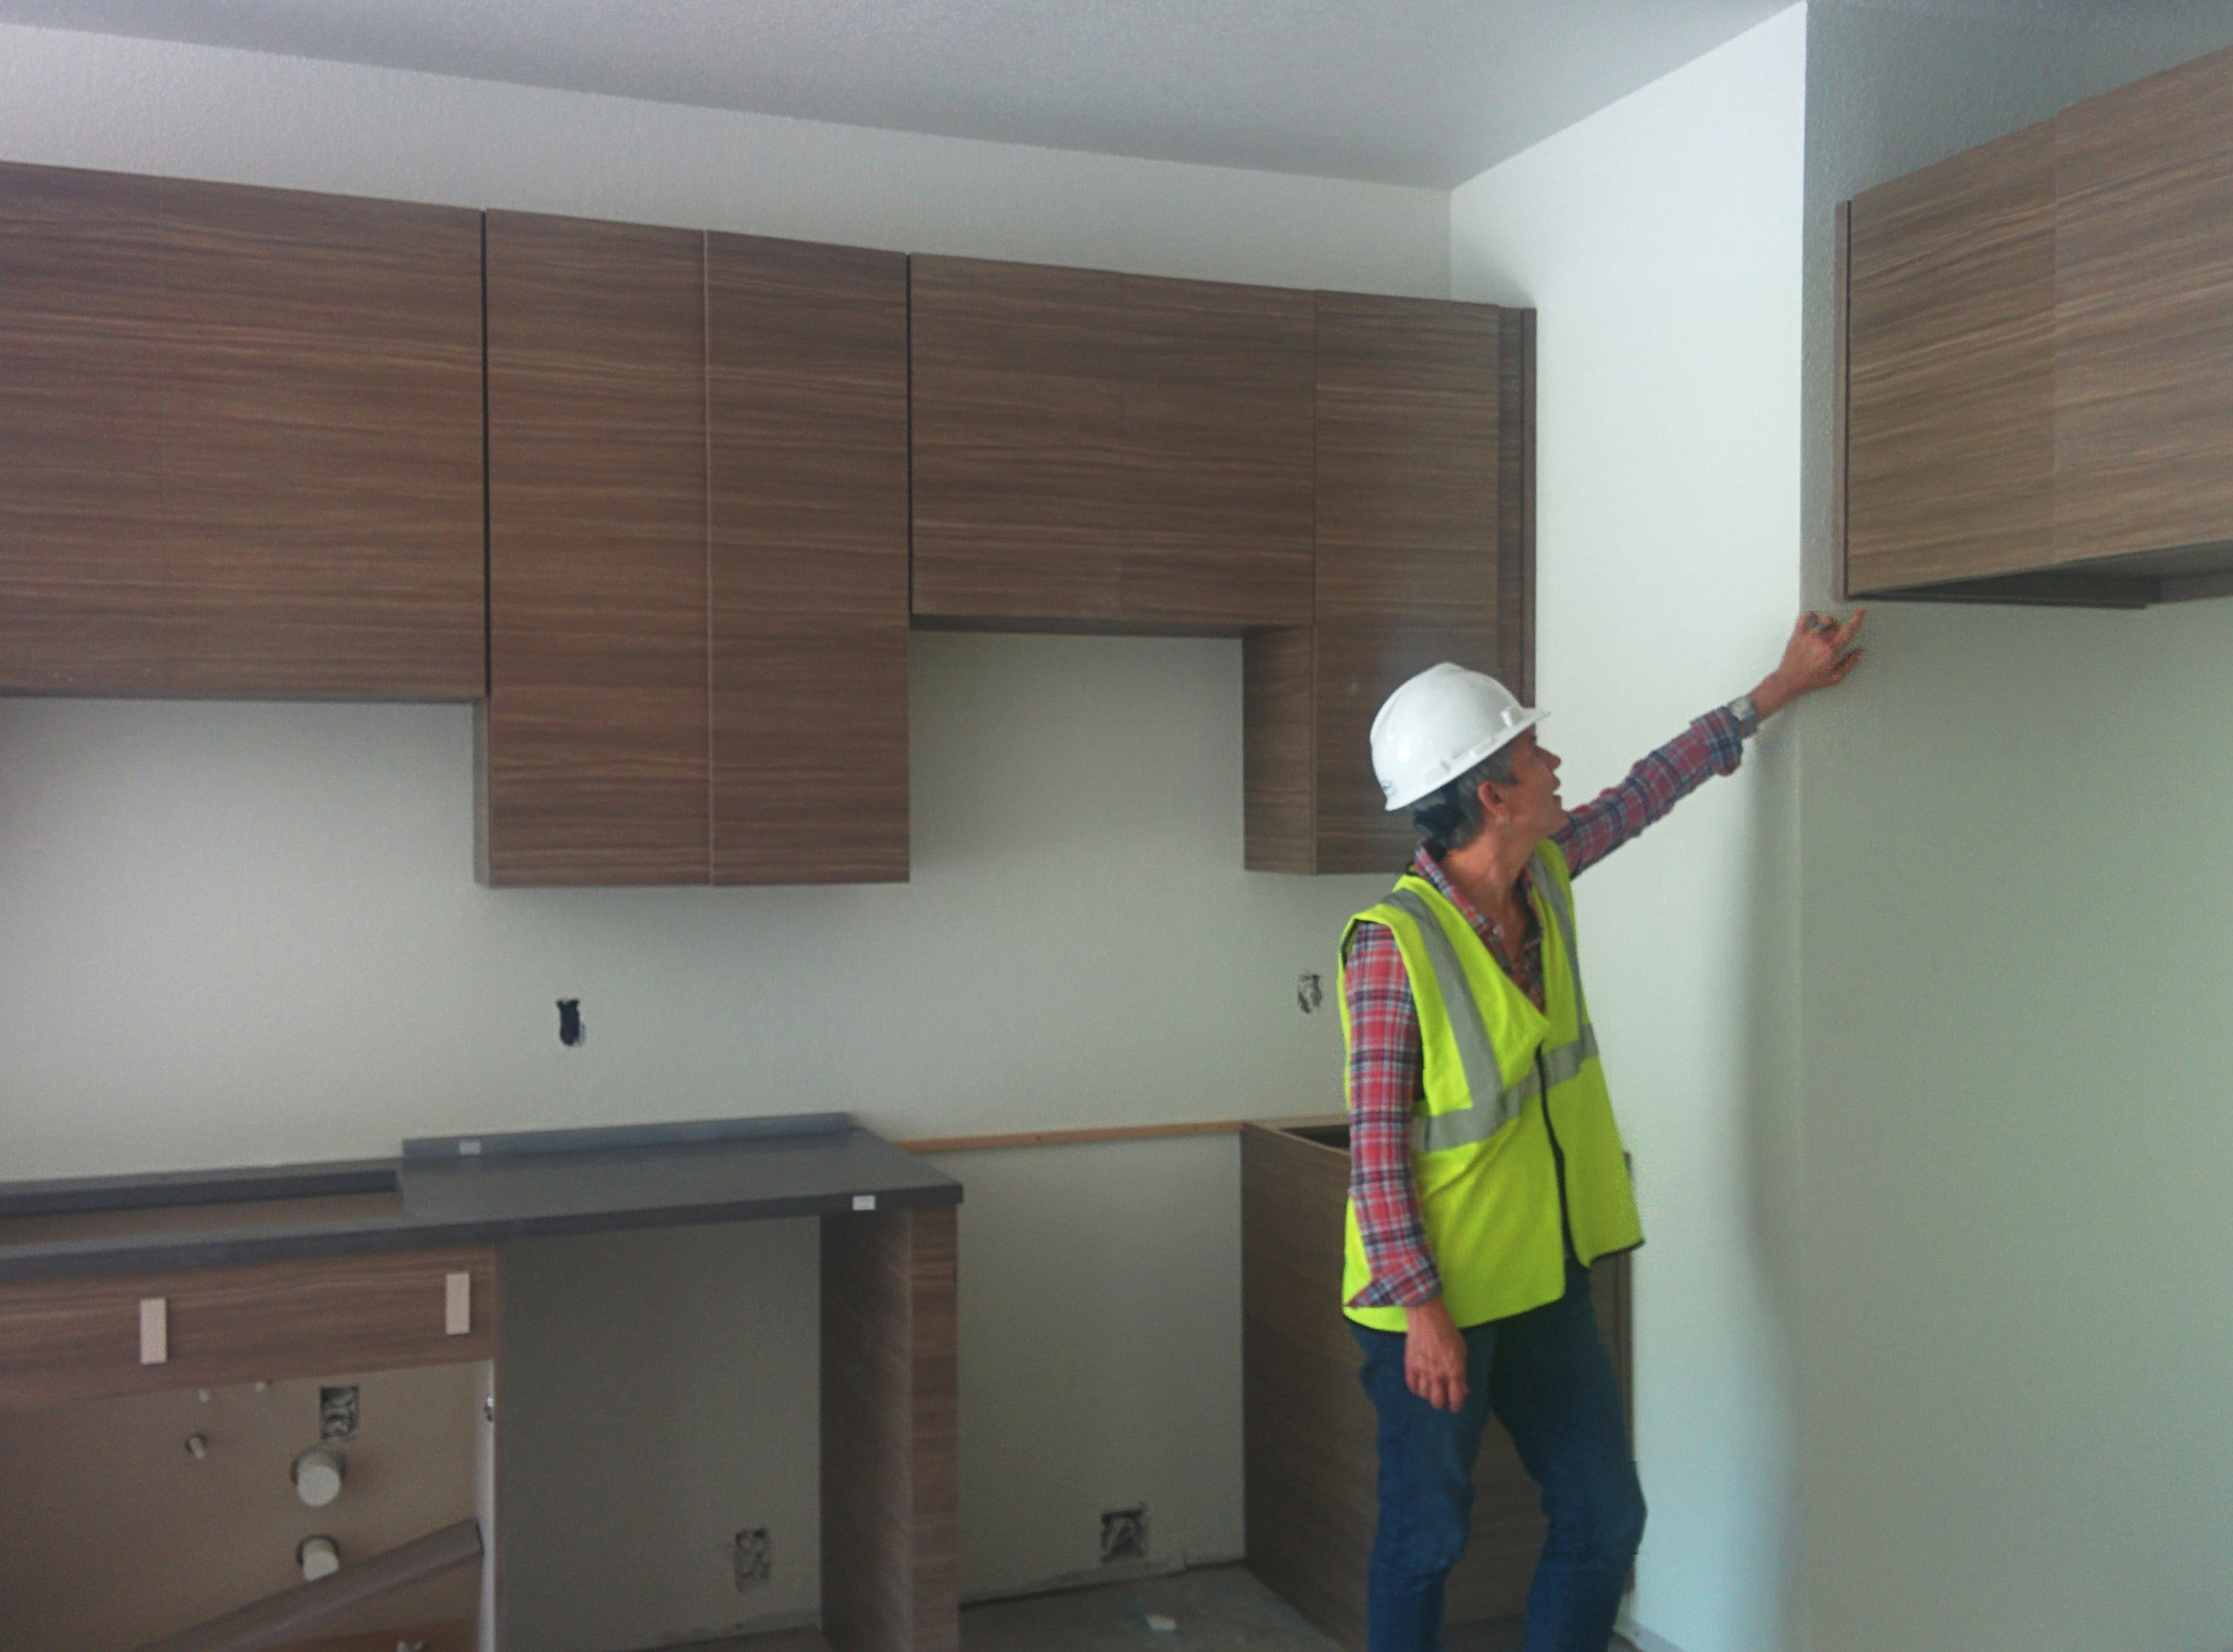 Kathy inspecting cabinetry at Unit.jpg